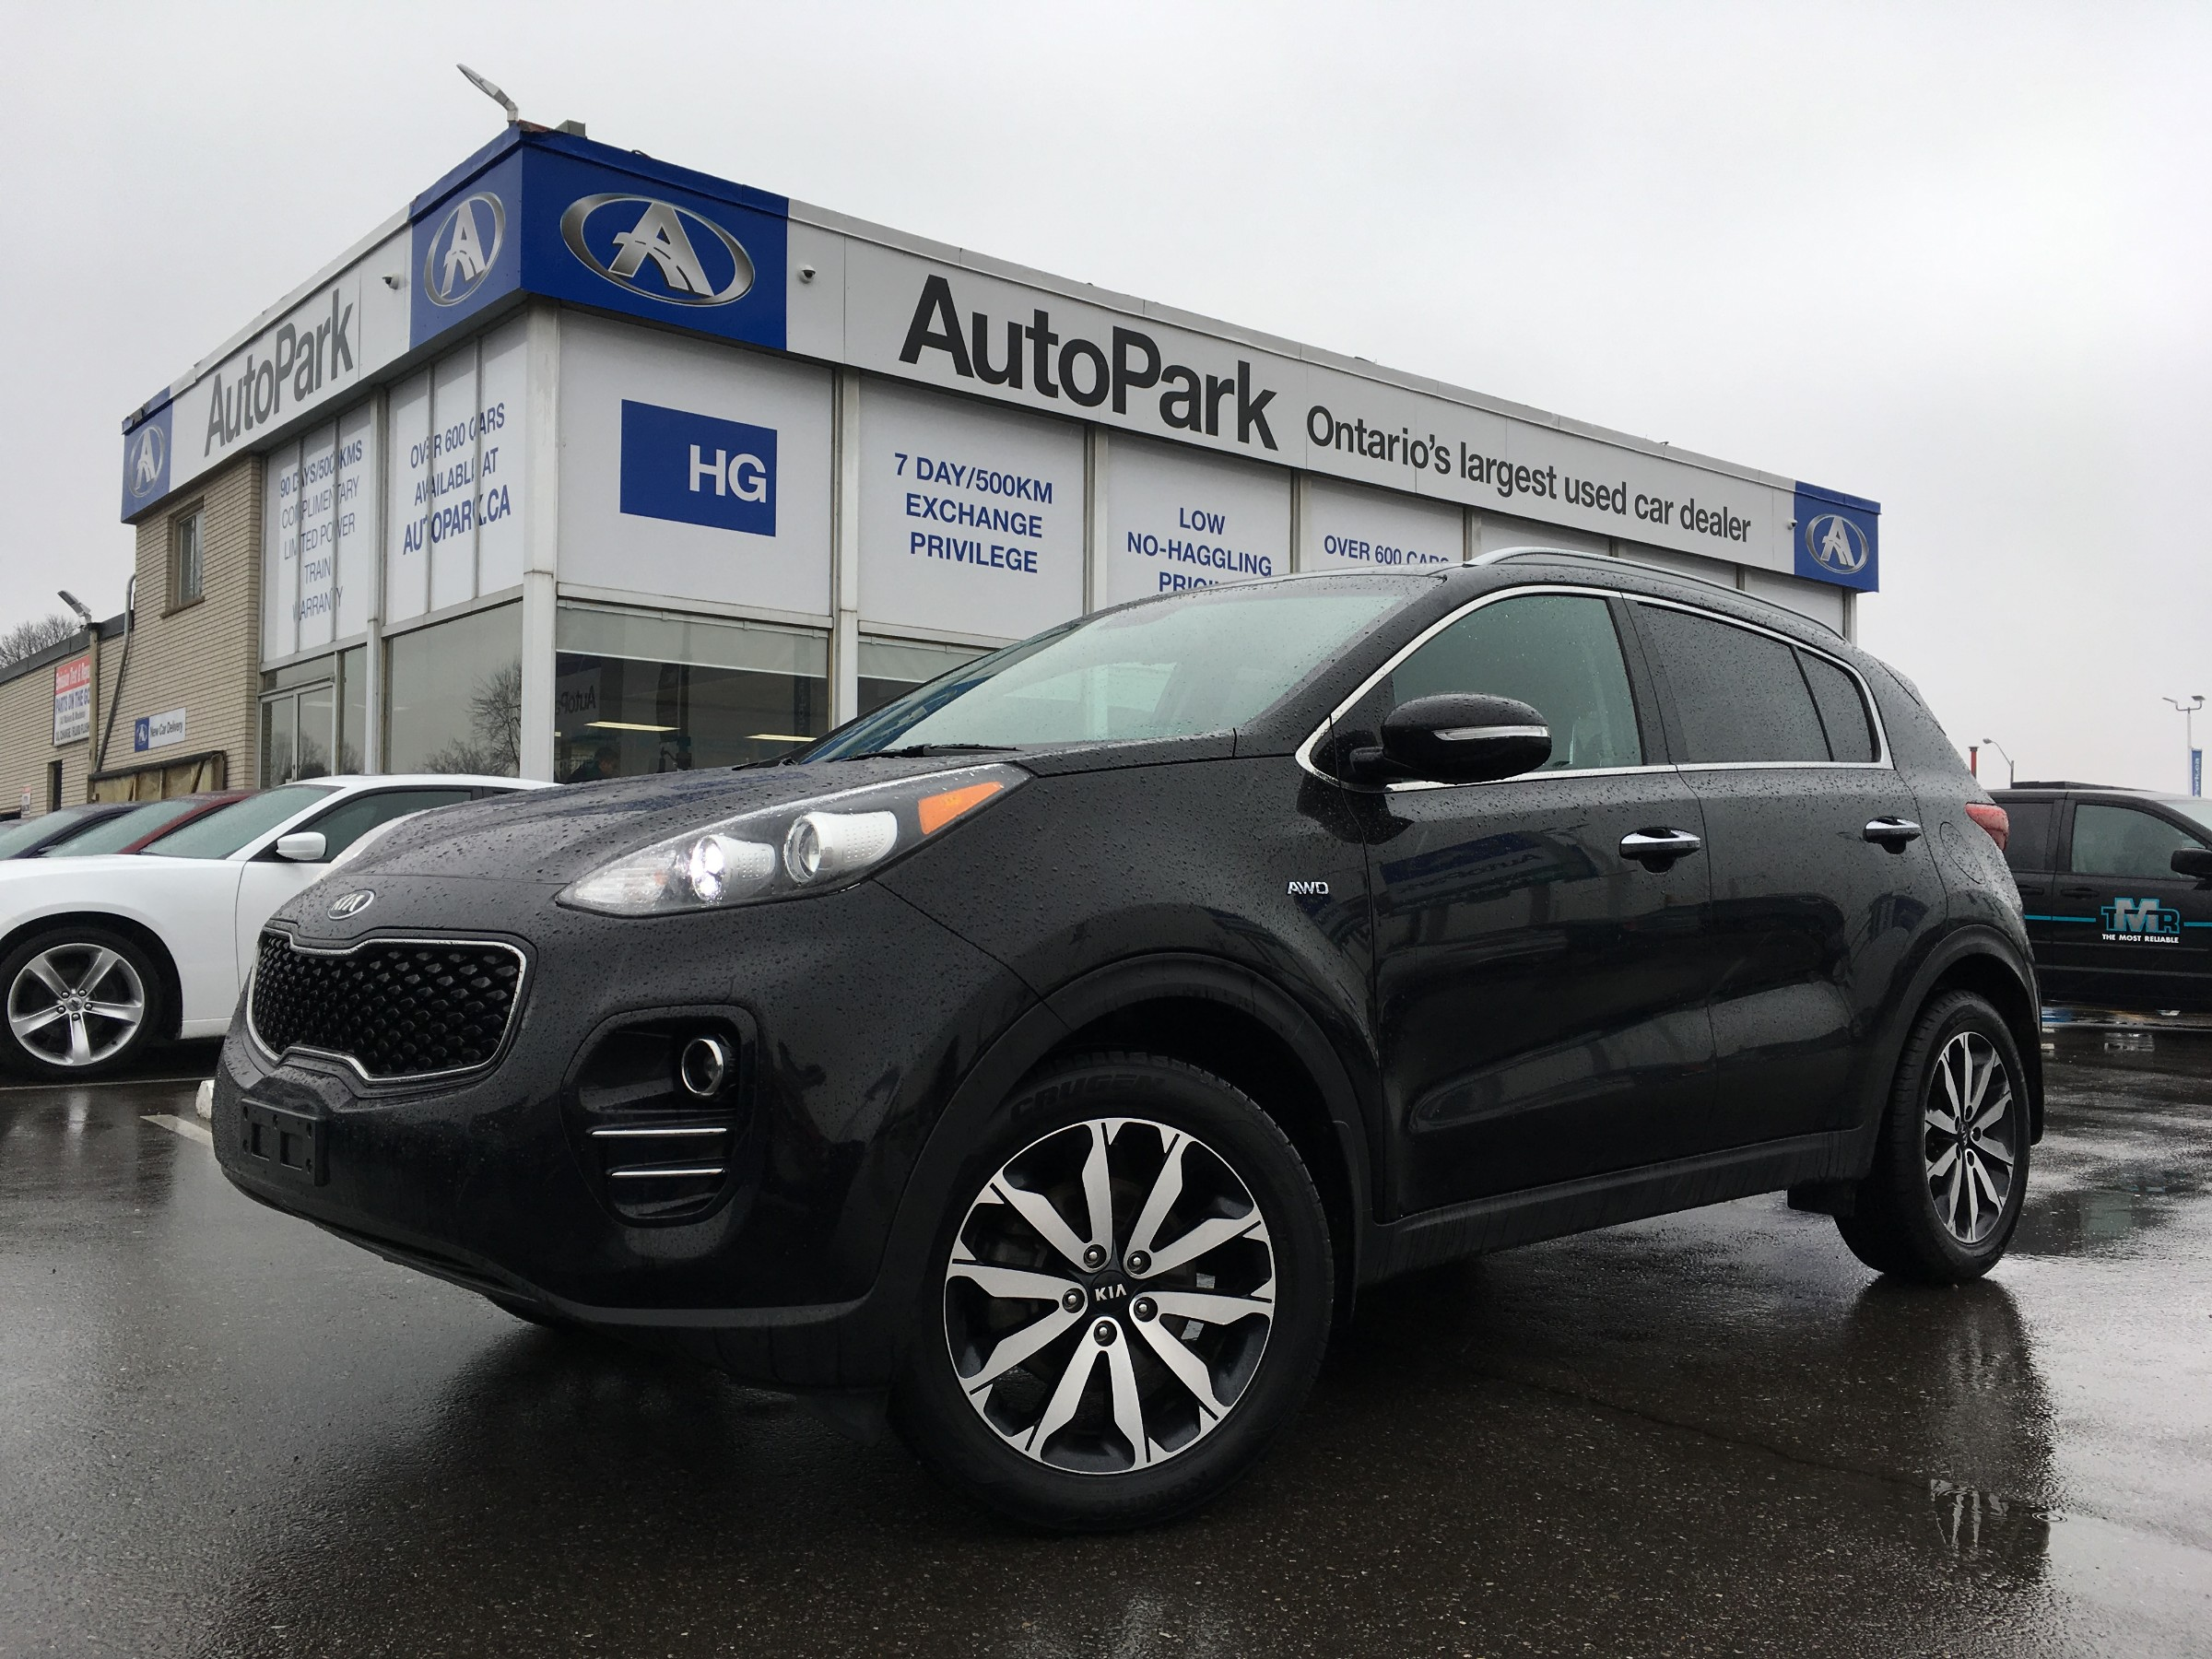 full for with sale suv lx warranty sorento used carfax carsforsale car kia certified beige